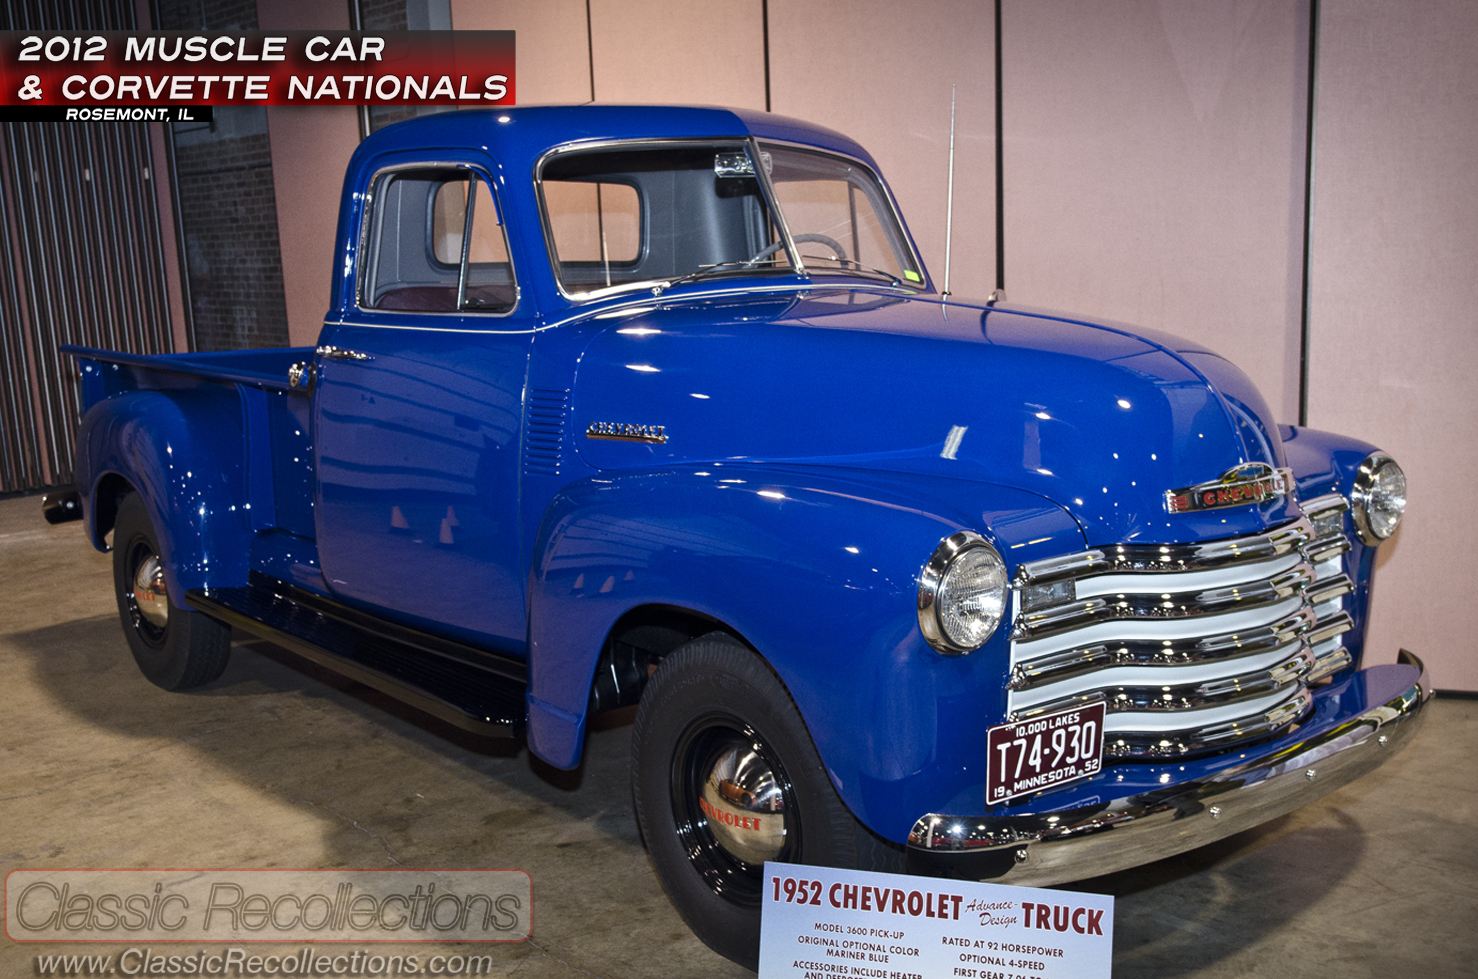 MCACN: 1952 Chevrolet 3600 Pickup Truck  Classic Recollections